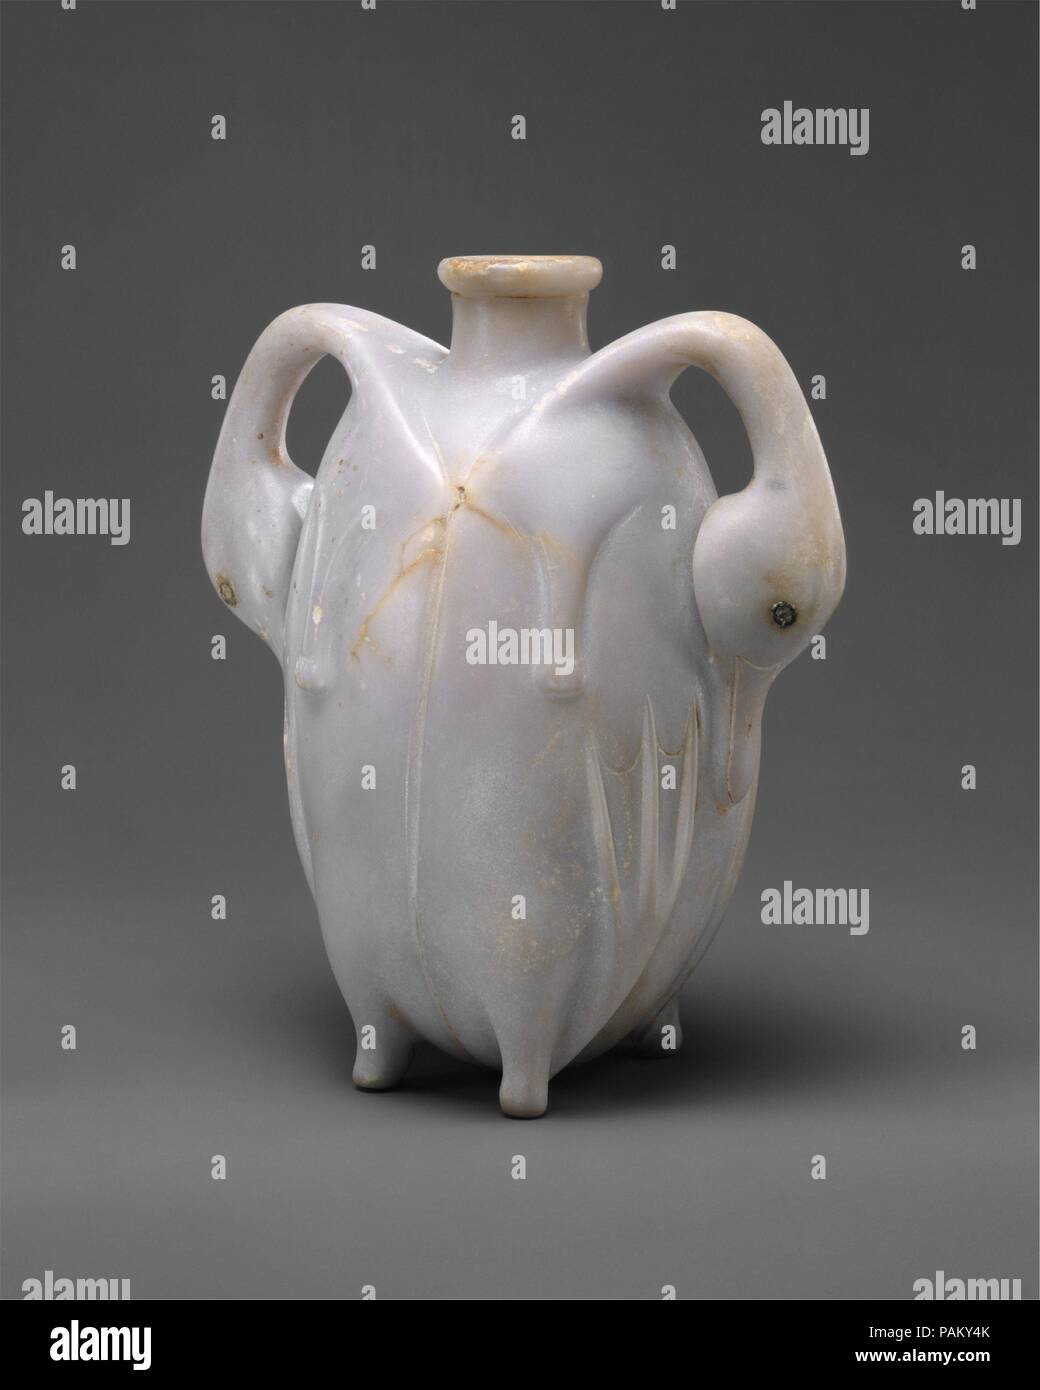 Perfume Vessel in the Shape of Two Trussed Ducks. Dimensions: h. 17.4 cm (6 7/8 in); w. 15.3 cm (6 in); d. 9.2 cm (3 5/8 in). Dynasty: Dynasty 17. Date: ca. 1580-1550 B.C..  The flask - delicately carved from the rare stone material anhydrite -  has the form of a pair of  trussed ducklings placed back-to-back. Their necks arch far from the bodies and the joints of their legs make four little knuckles for the vessel to stad on. The birds' eyes are inlaid with copper. Trussed duck were a common offering to the dead.  It is, therefore, possible that this vessel, although originally without doubt  - Stock Image